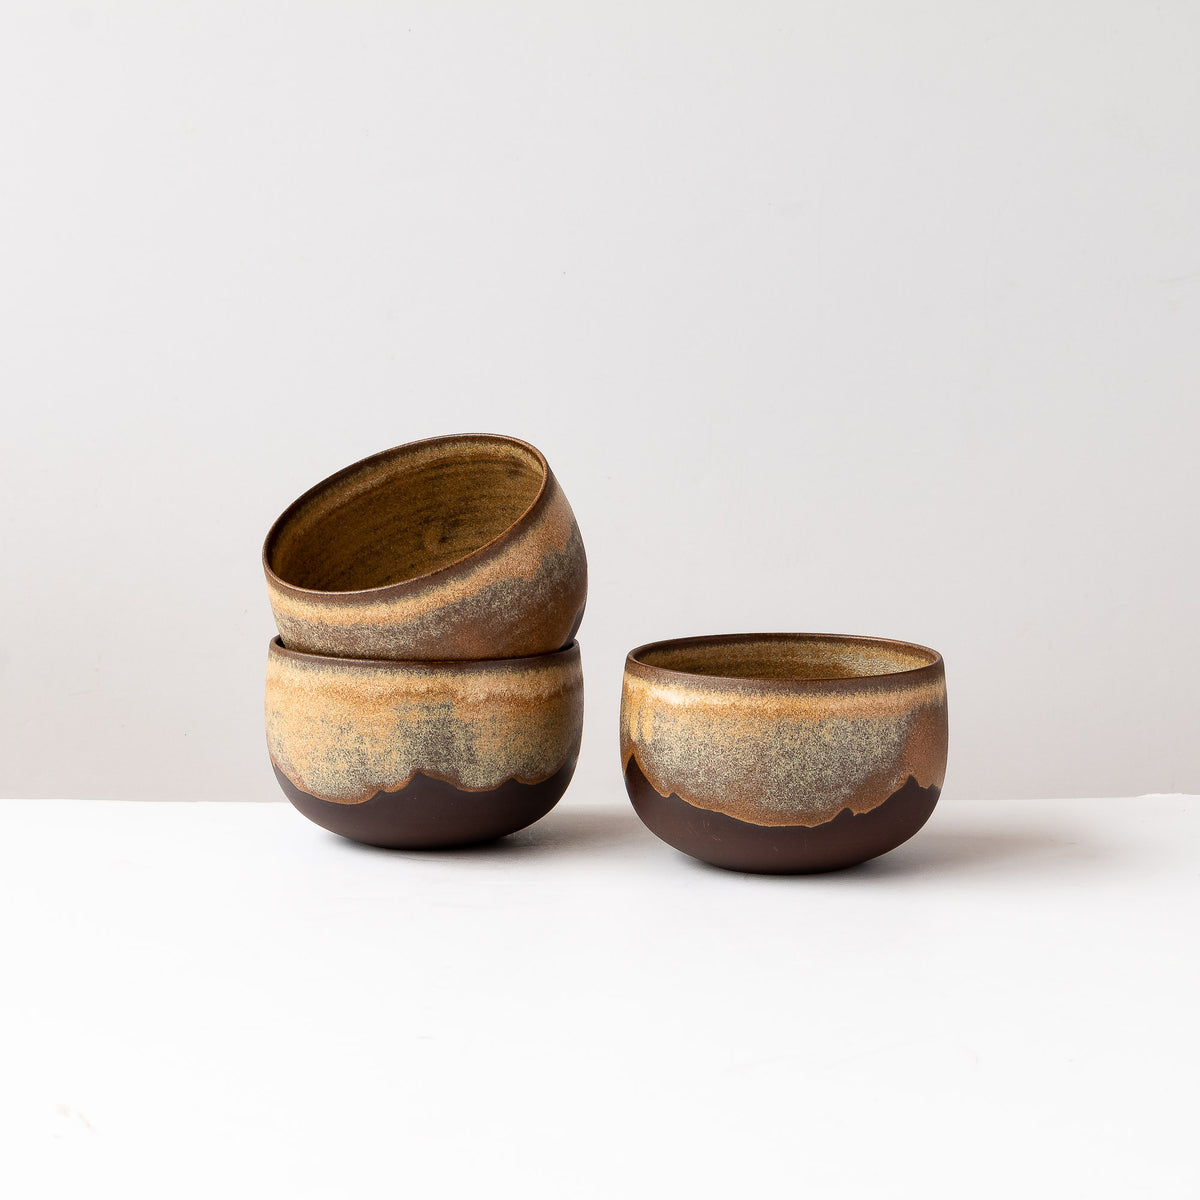 Three Handmade Coffee Bowls in Black Stoneware - Sold by Chic & Basta